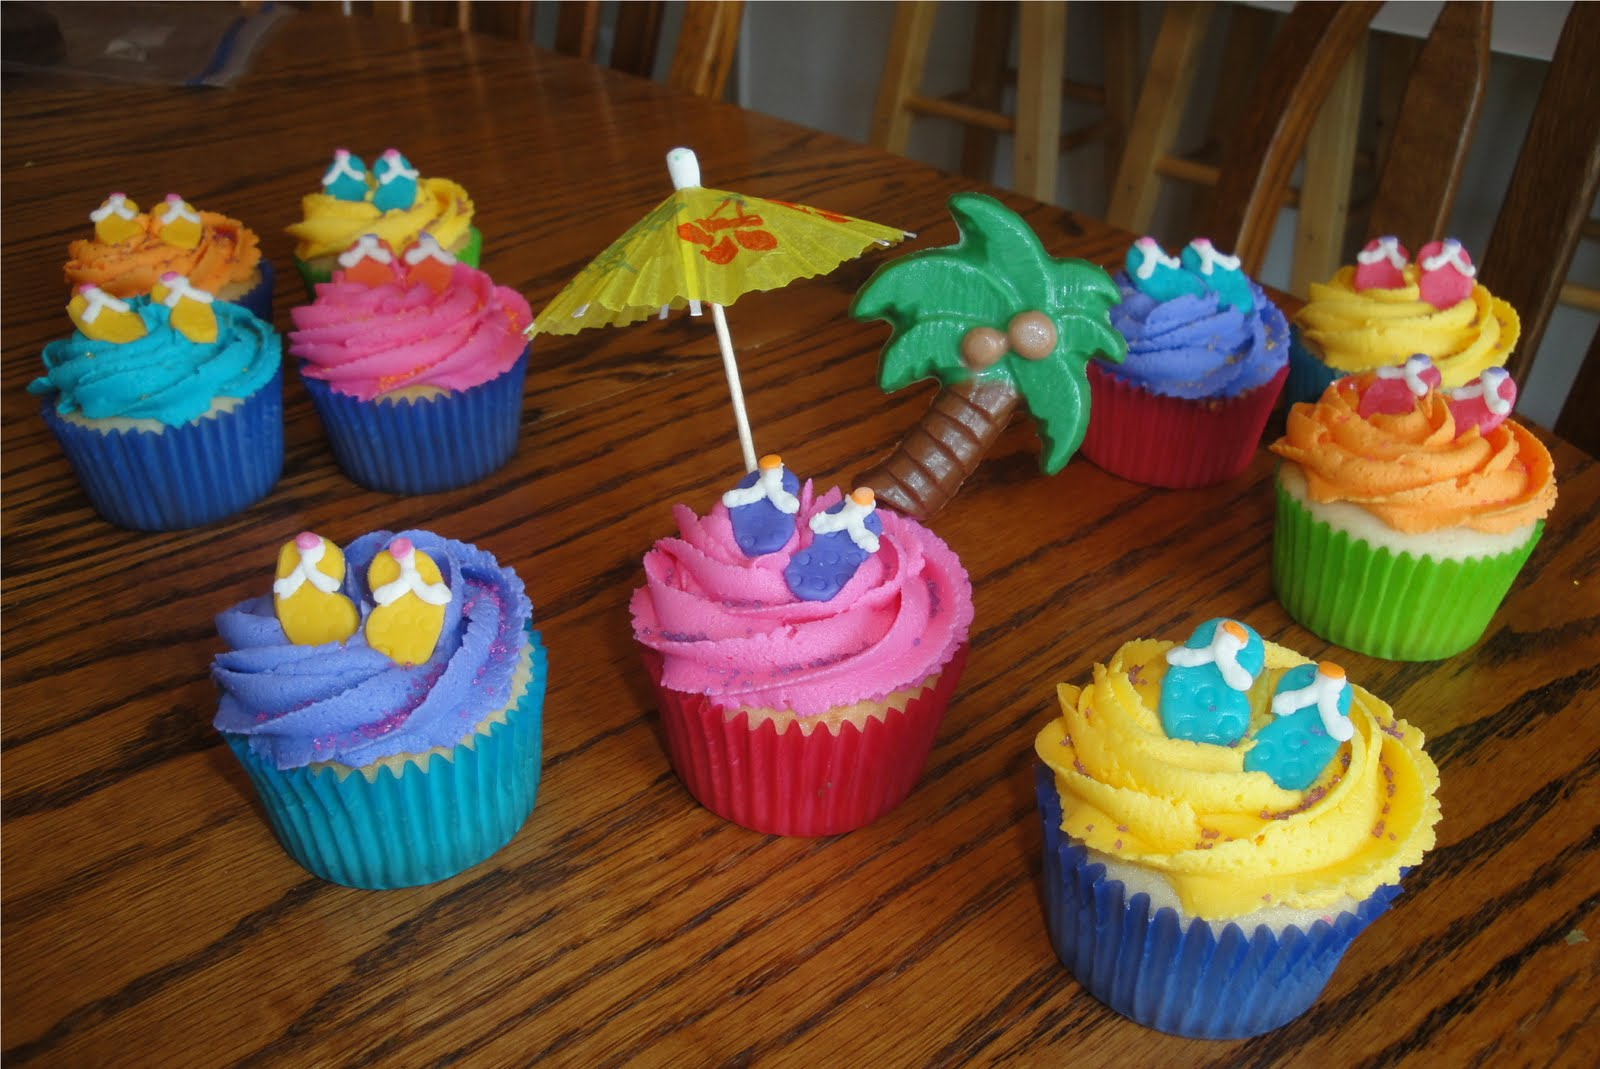 8 Year Old Birthday Party Ideas For Girls